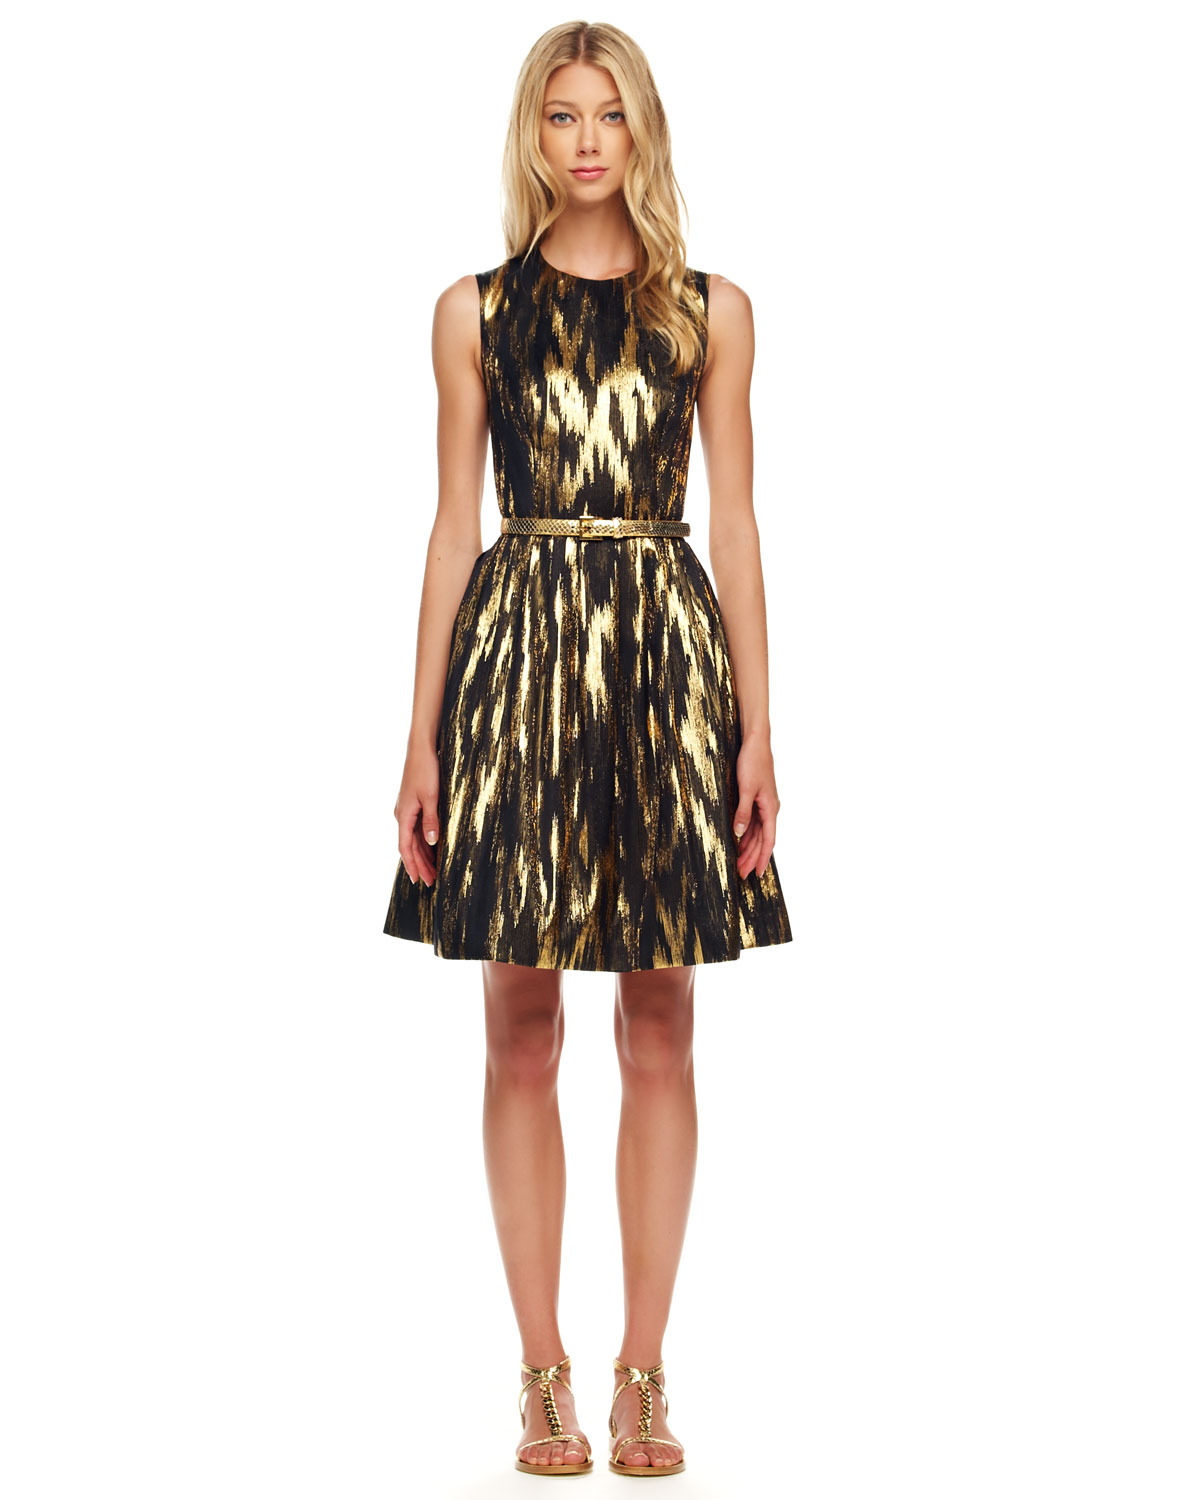 Wonderful Michael Kors Sequined Wrap Dress In Black | Lyst